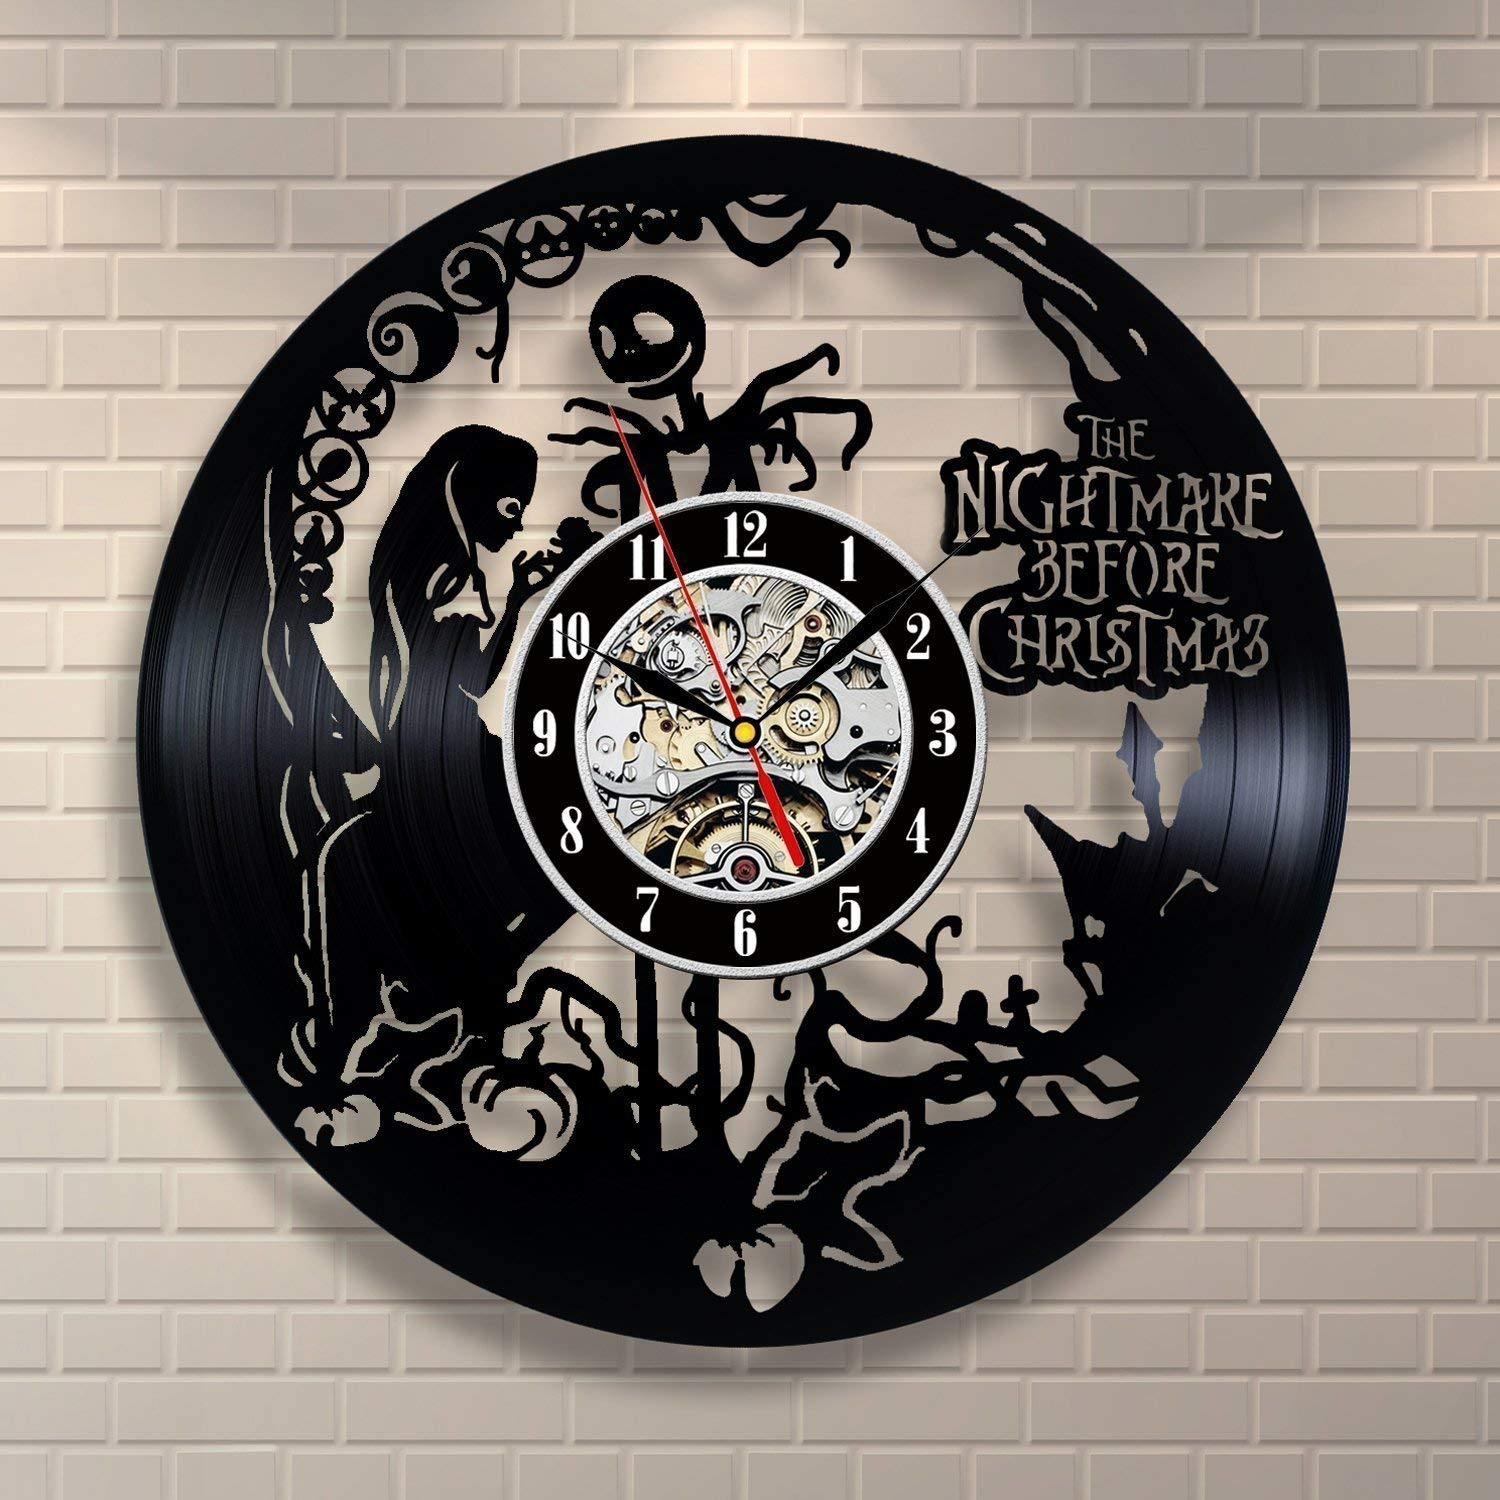 The-Nightmare-Before-Christmas-Vinyl-Record-Wall-Clock-Decorate-your ...